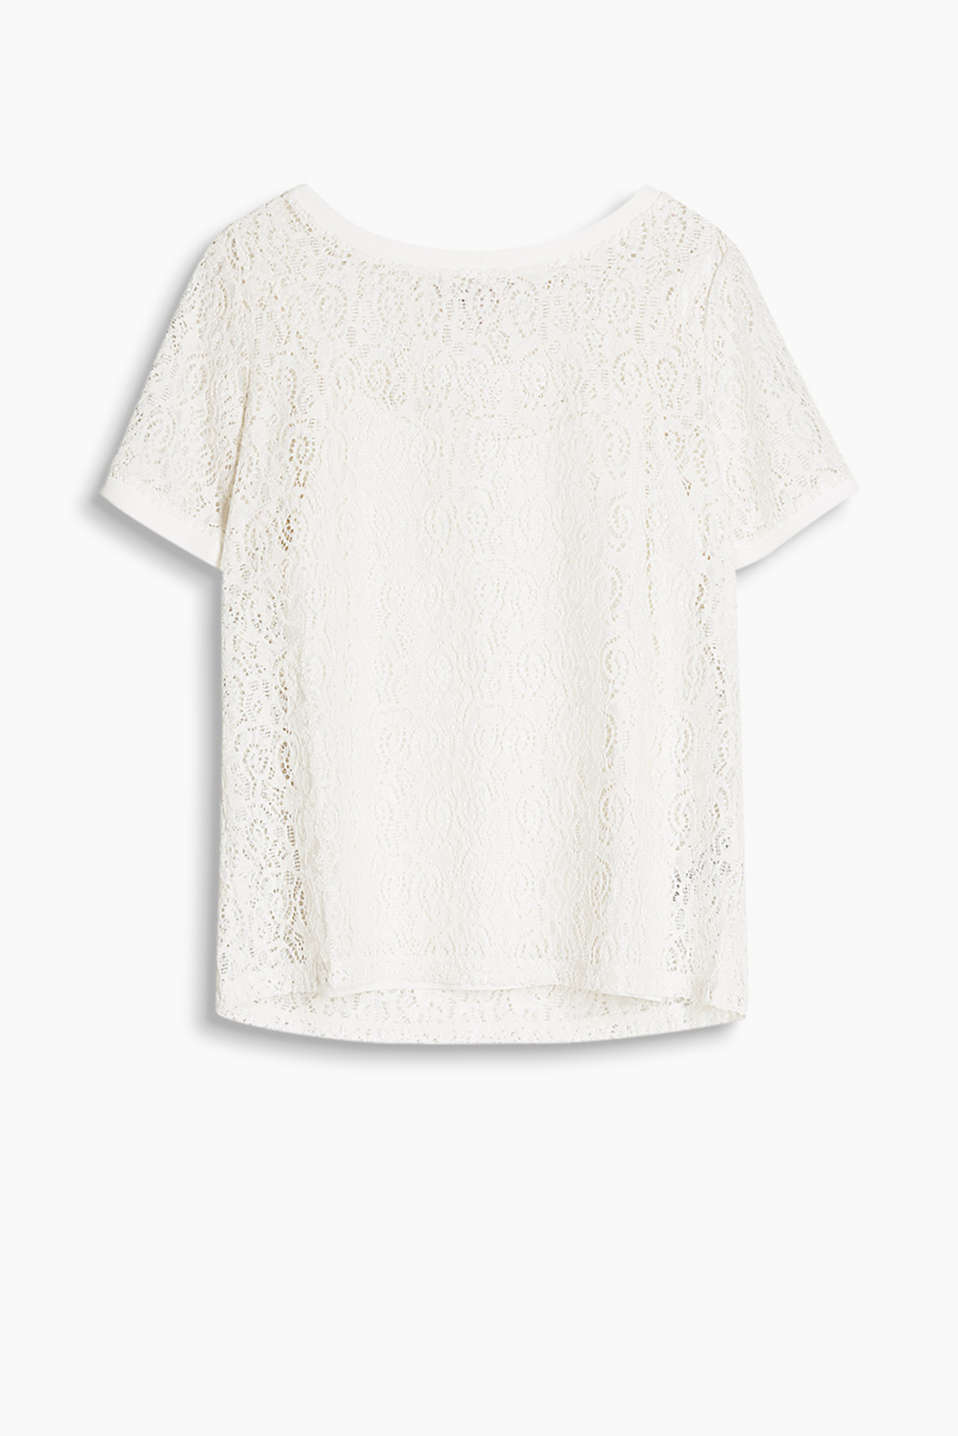 2 in 1: Delicate lace top with an integrated spaghetti strap top